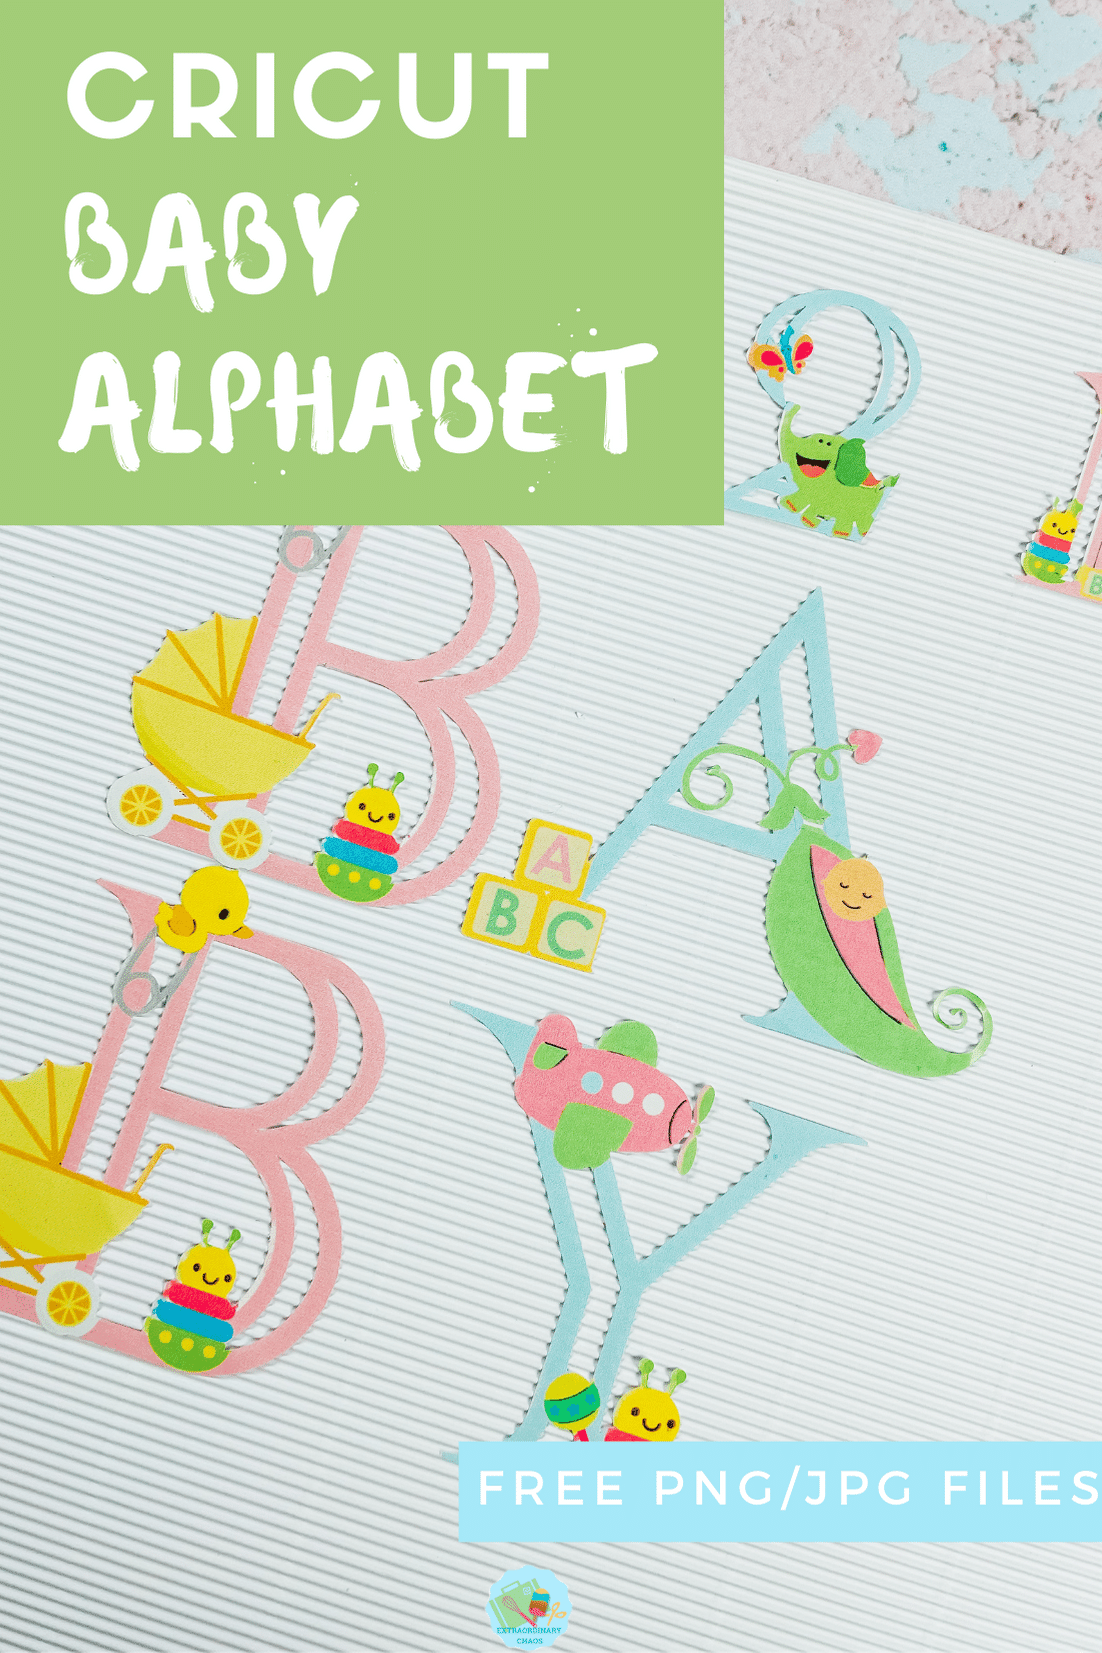 Free downloadable Baby Alphabet for creating baby gifts and decorating nurseries